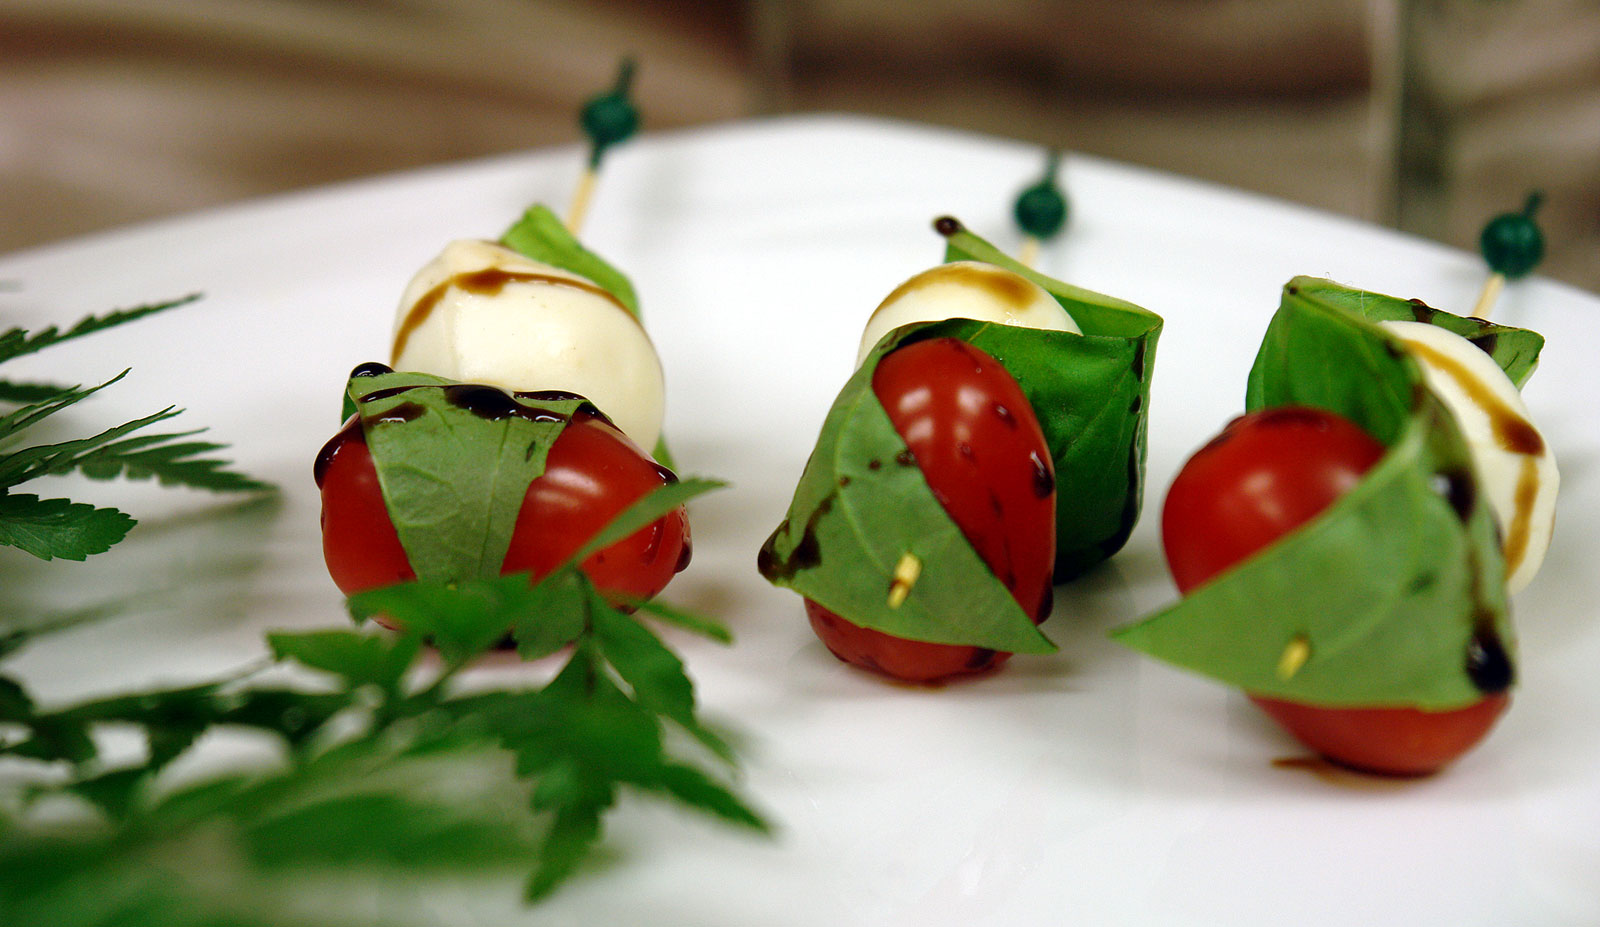 Chef Jack's Catering